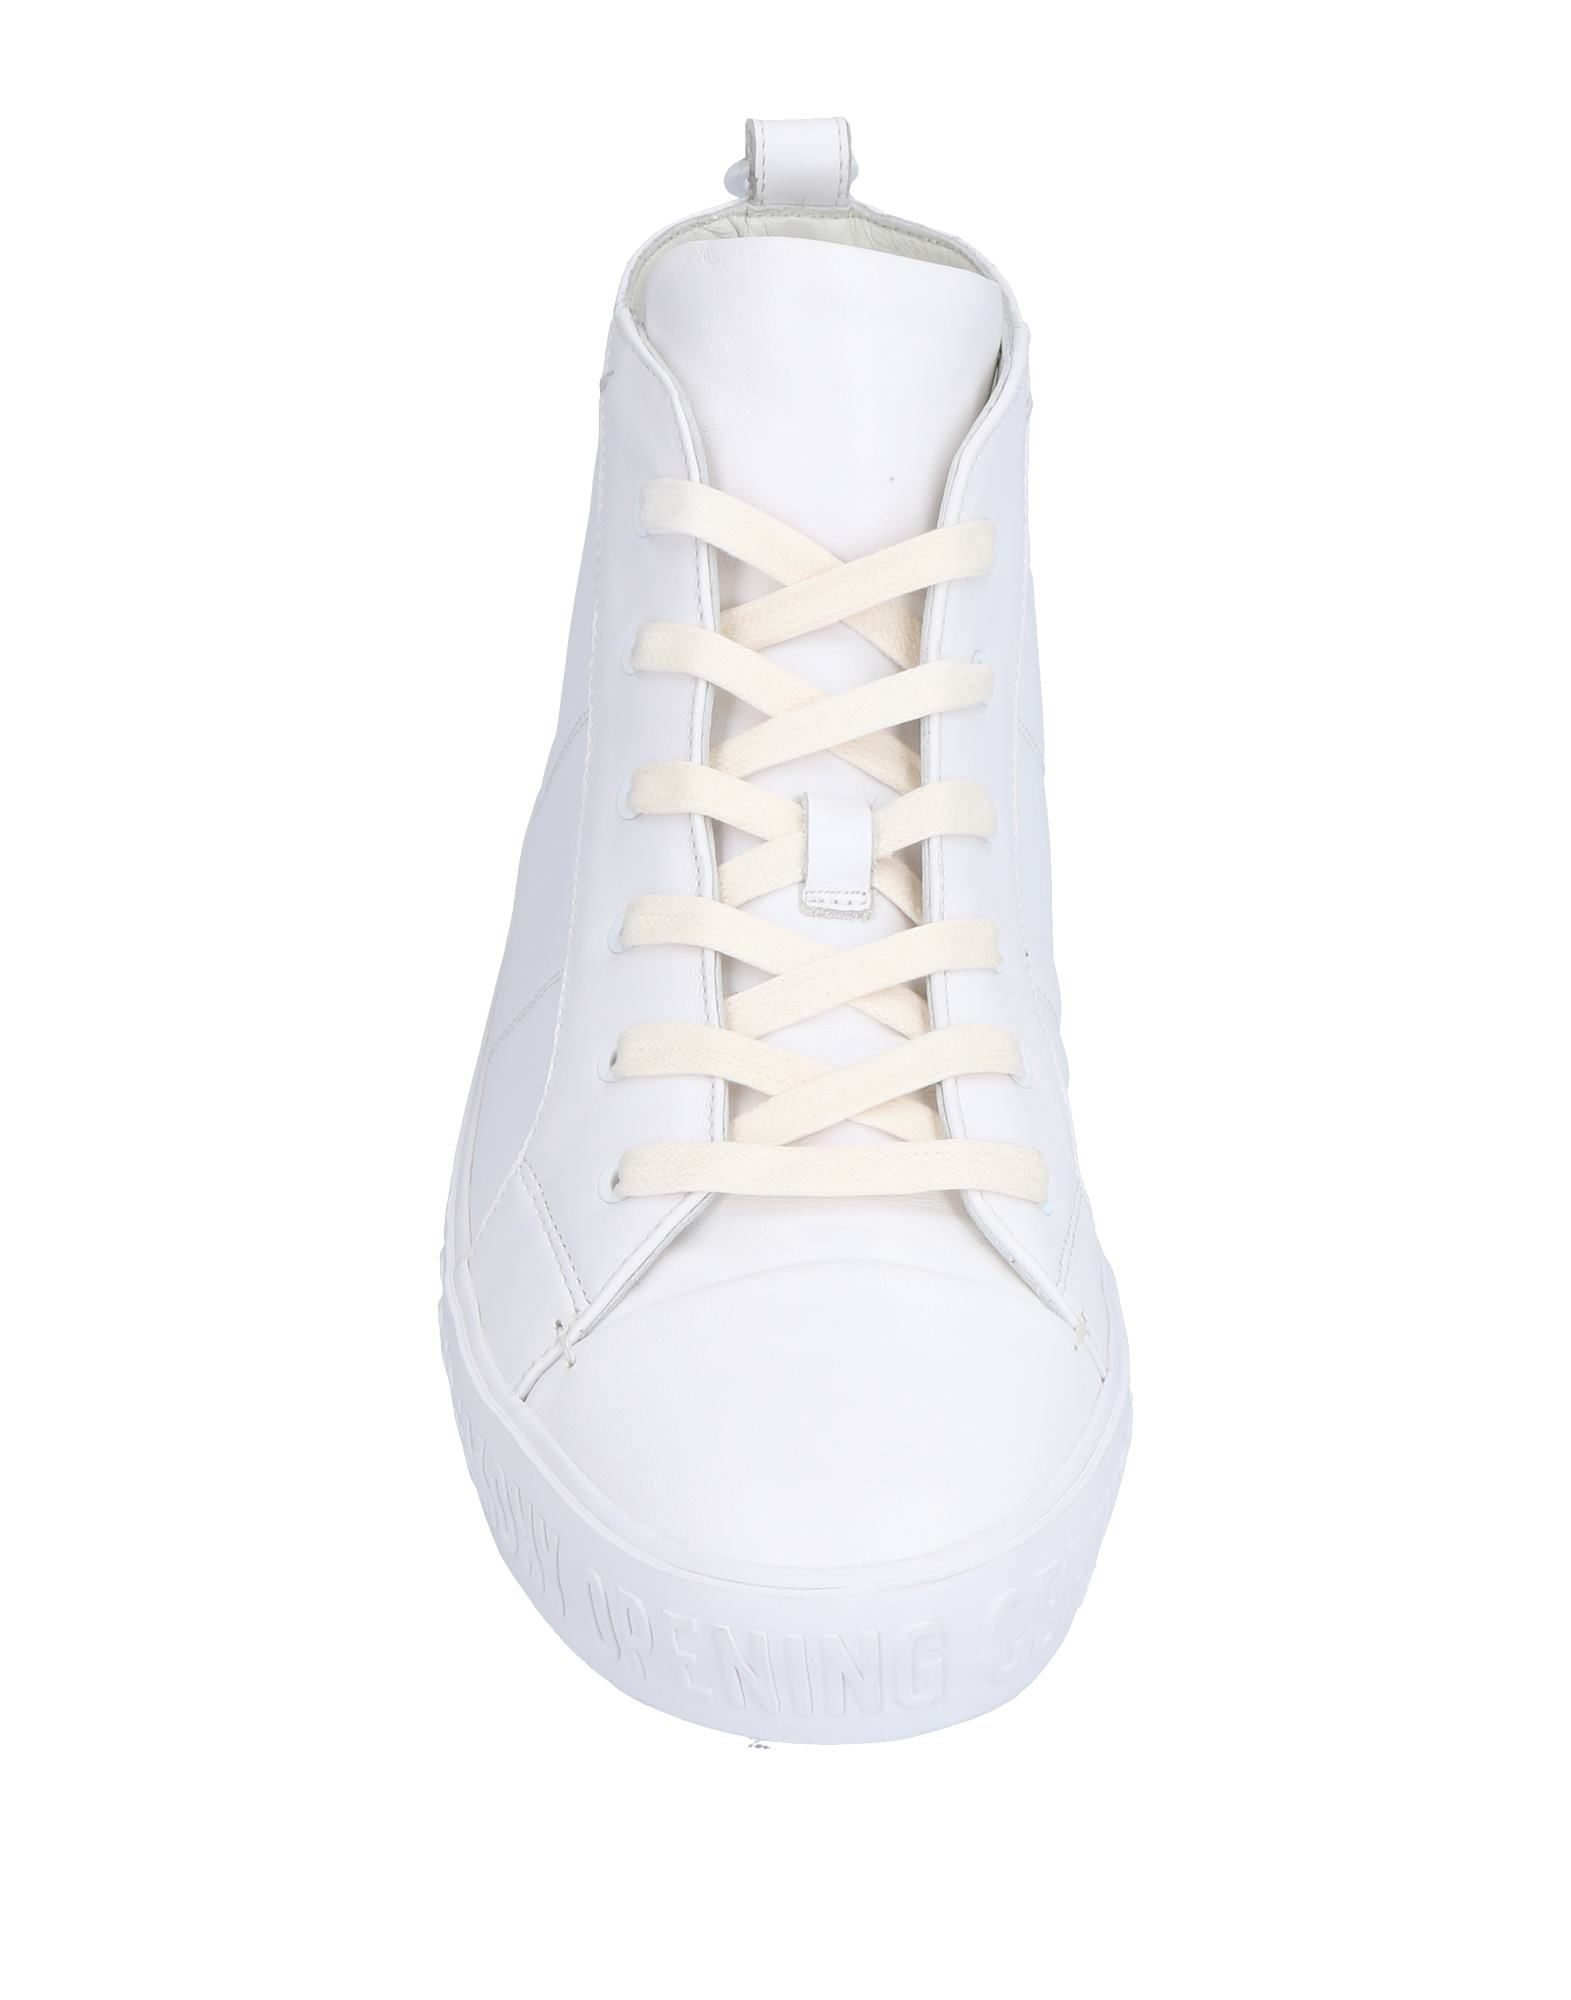 Rabatt echte Schuhe Opening Ceremony 11441606TO Sneakers Herren  11441606TO Ceremony 0cf756